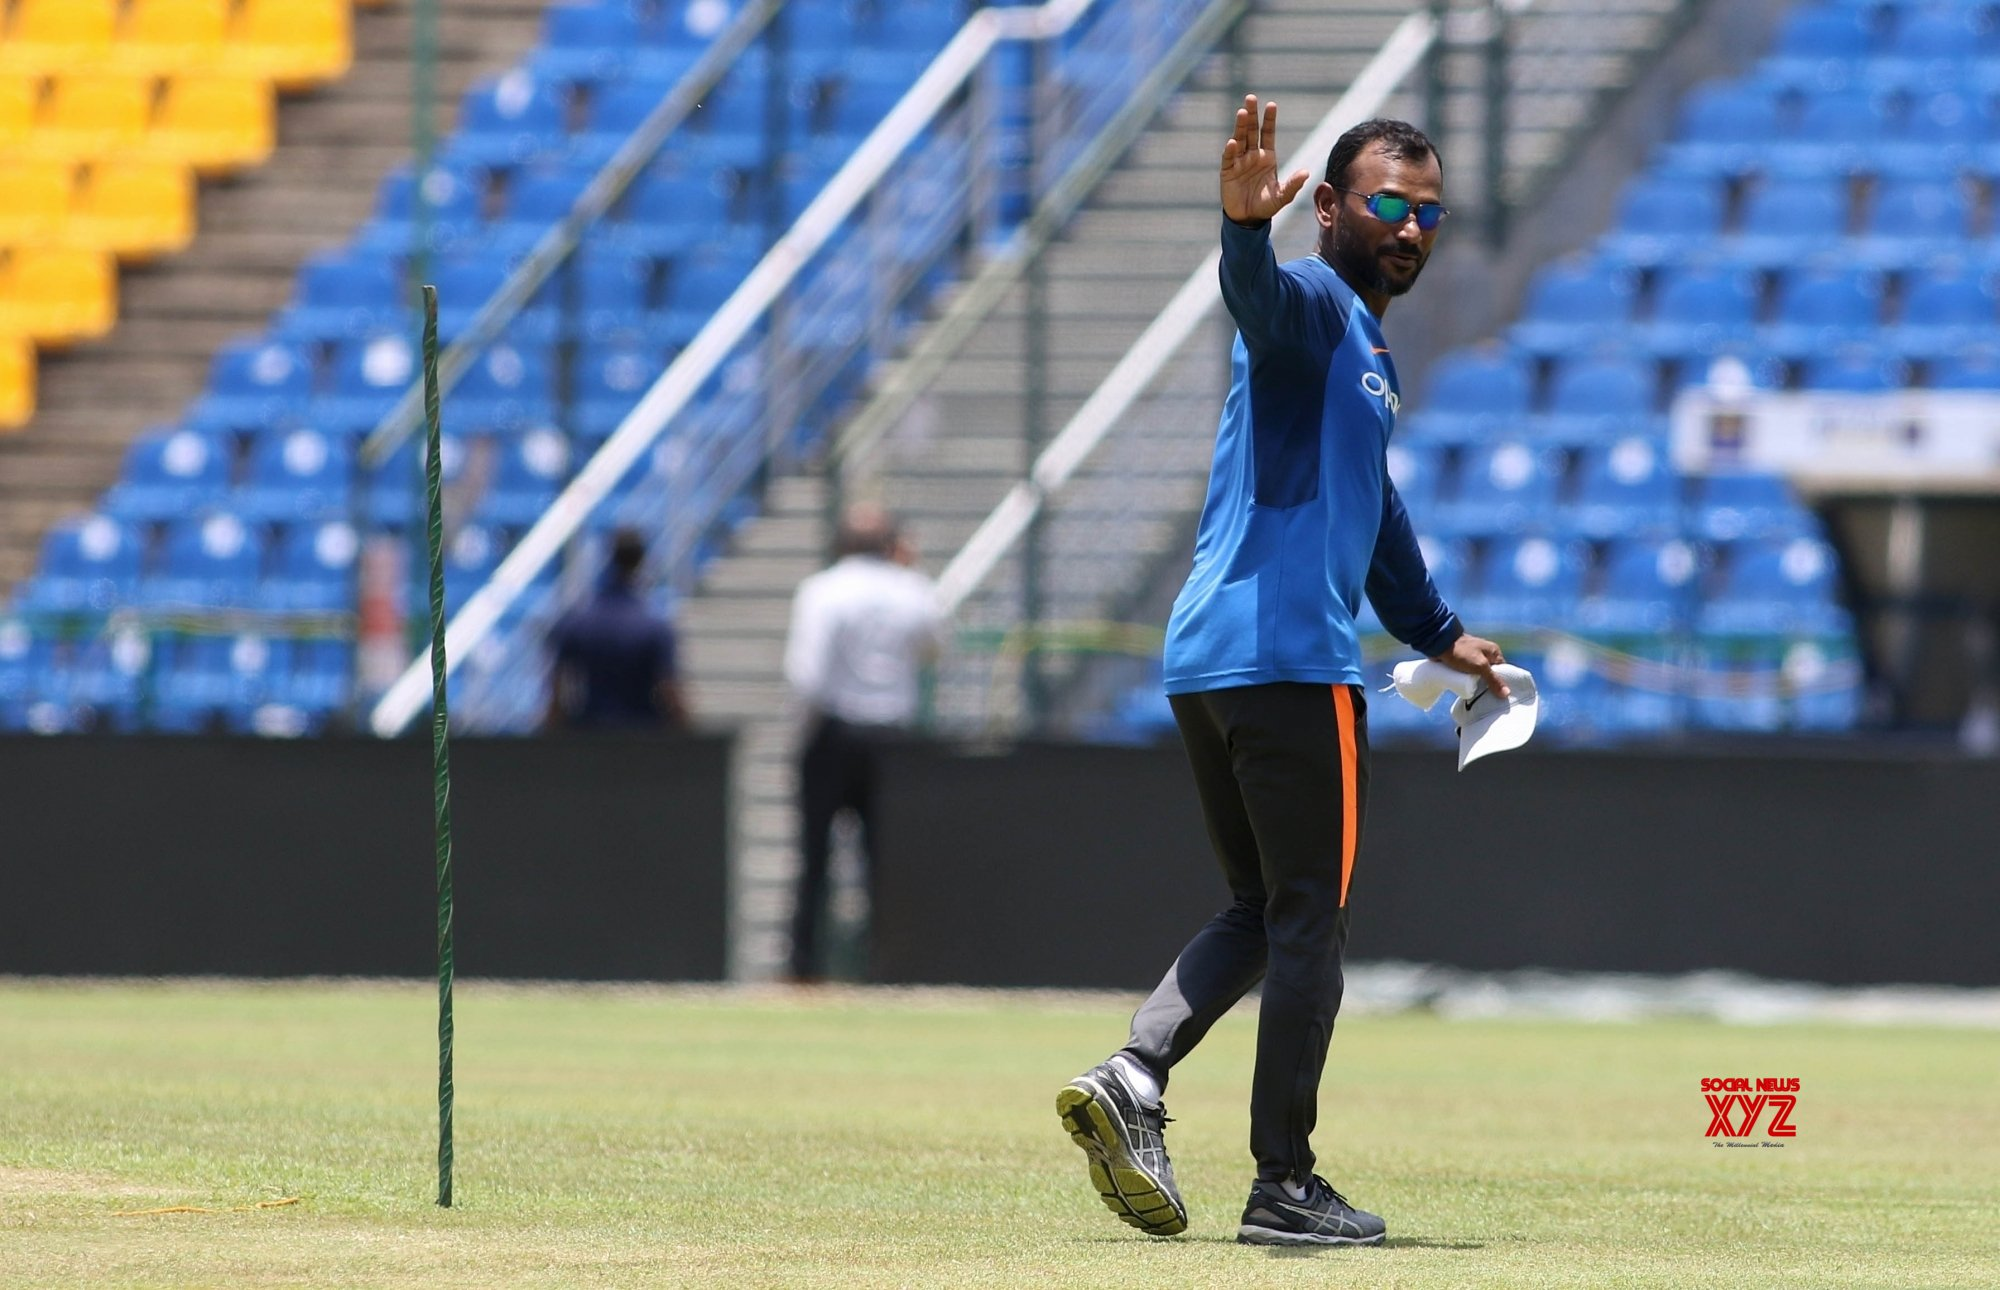 'Want India to out-field every opponent in World Cup'